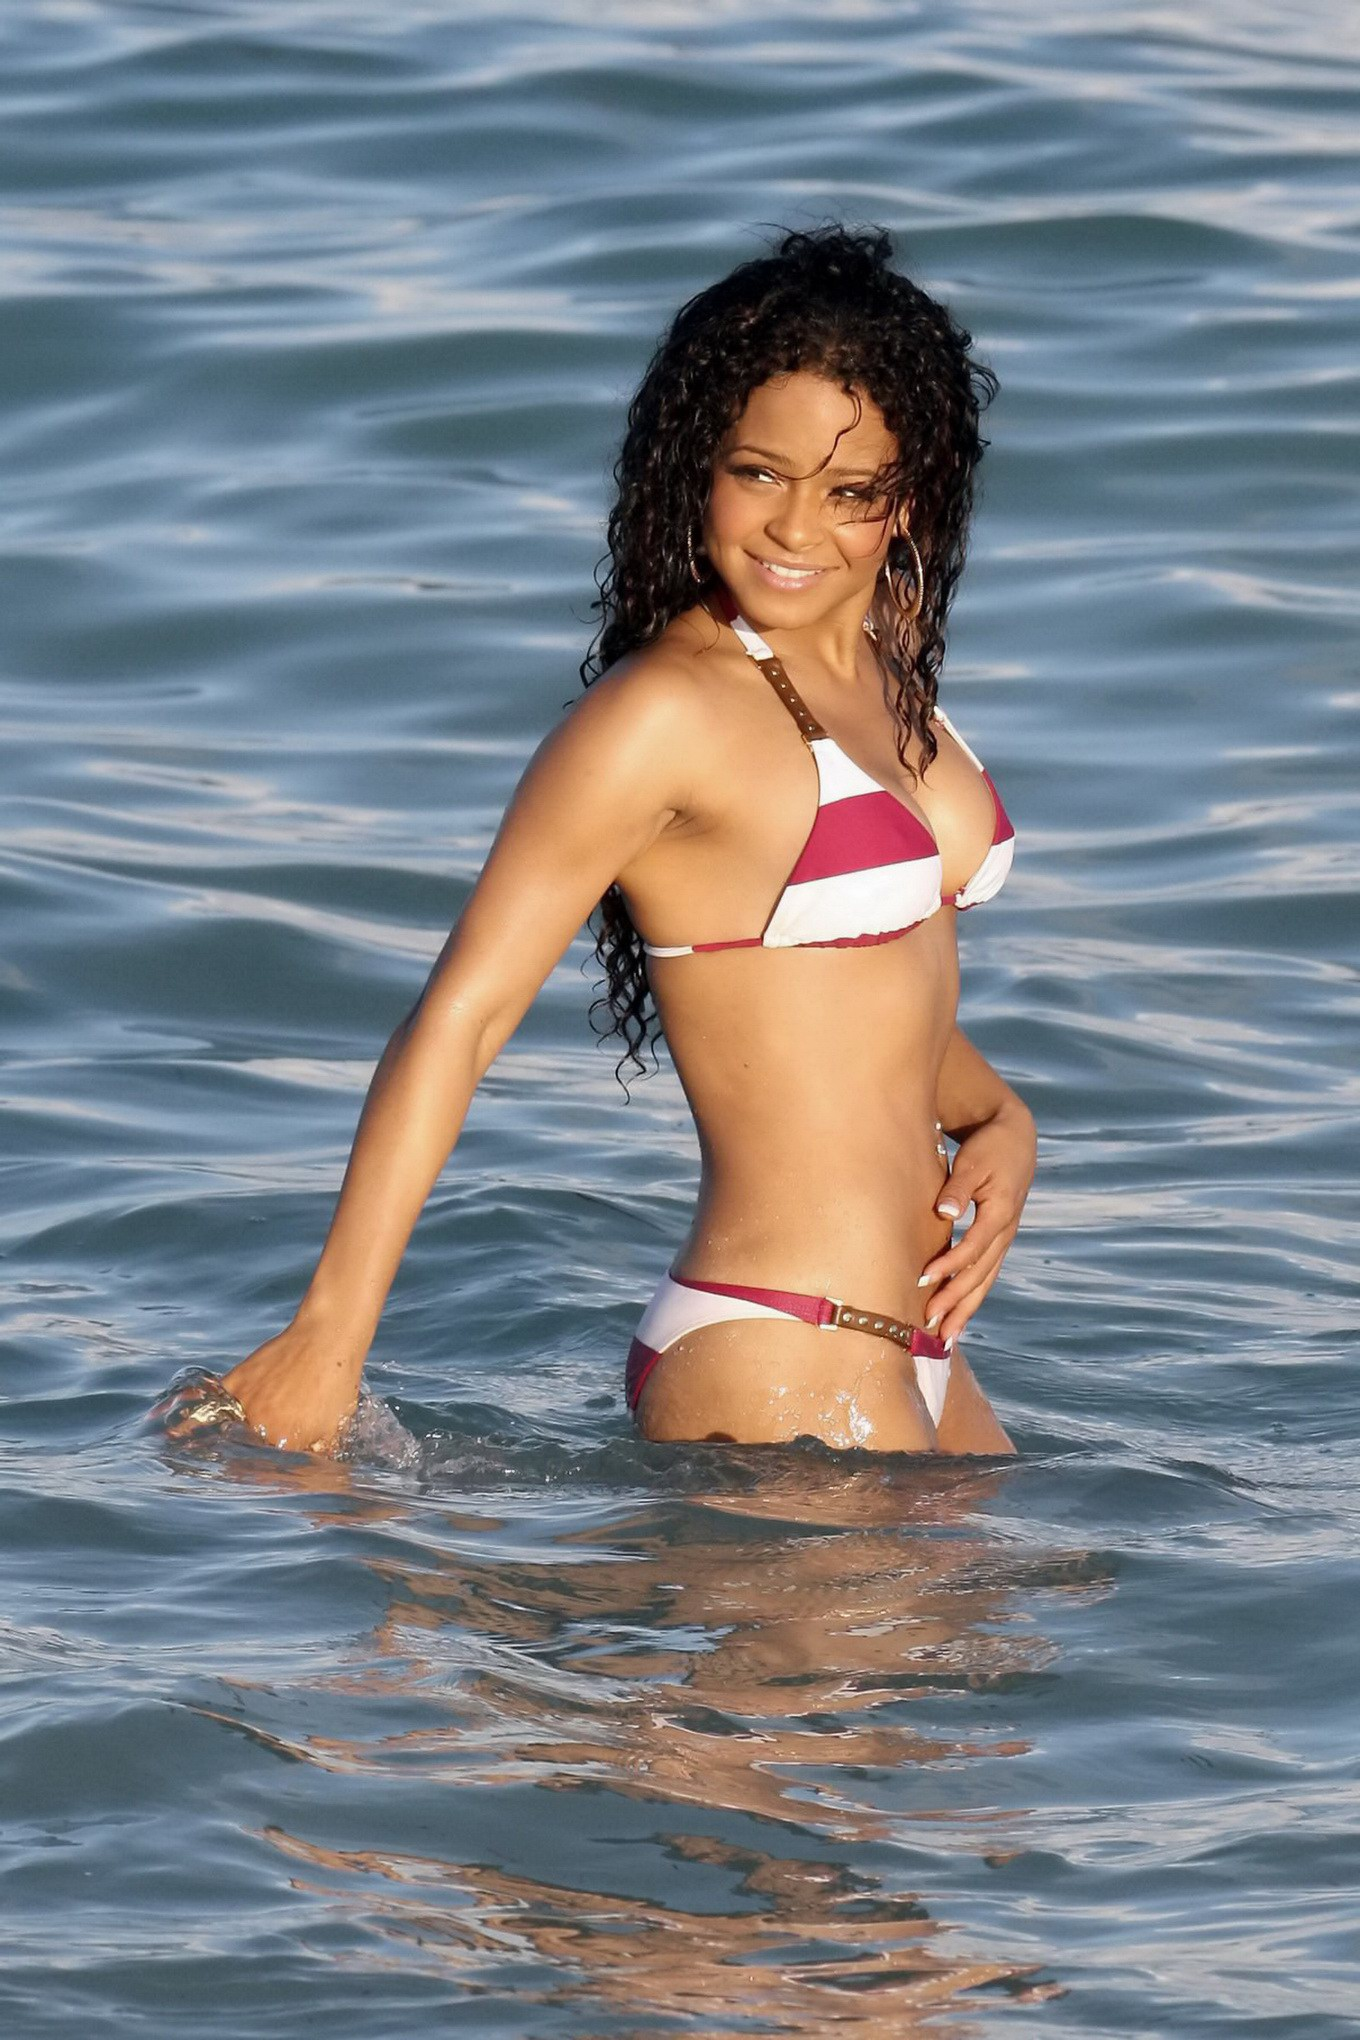 her hot body in tiny bi colored bikini at the beach in miami